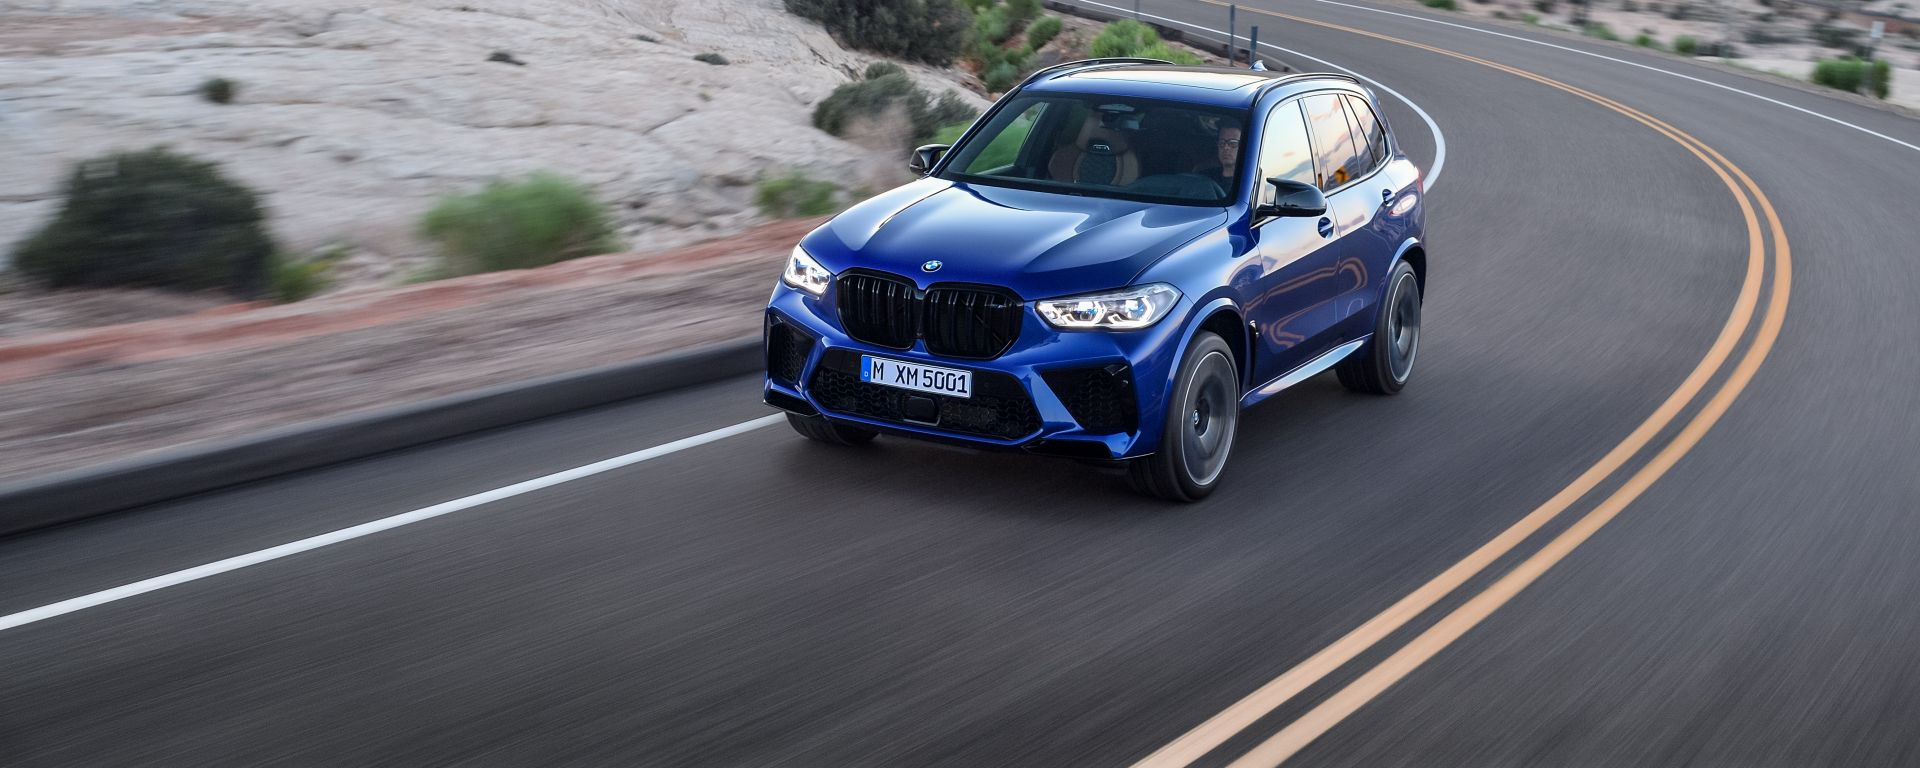 Bmw X5 M e X5 M Competition 2020: a Los Angeles con 625 CV